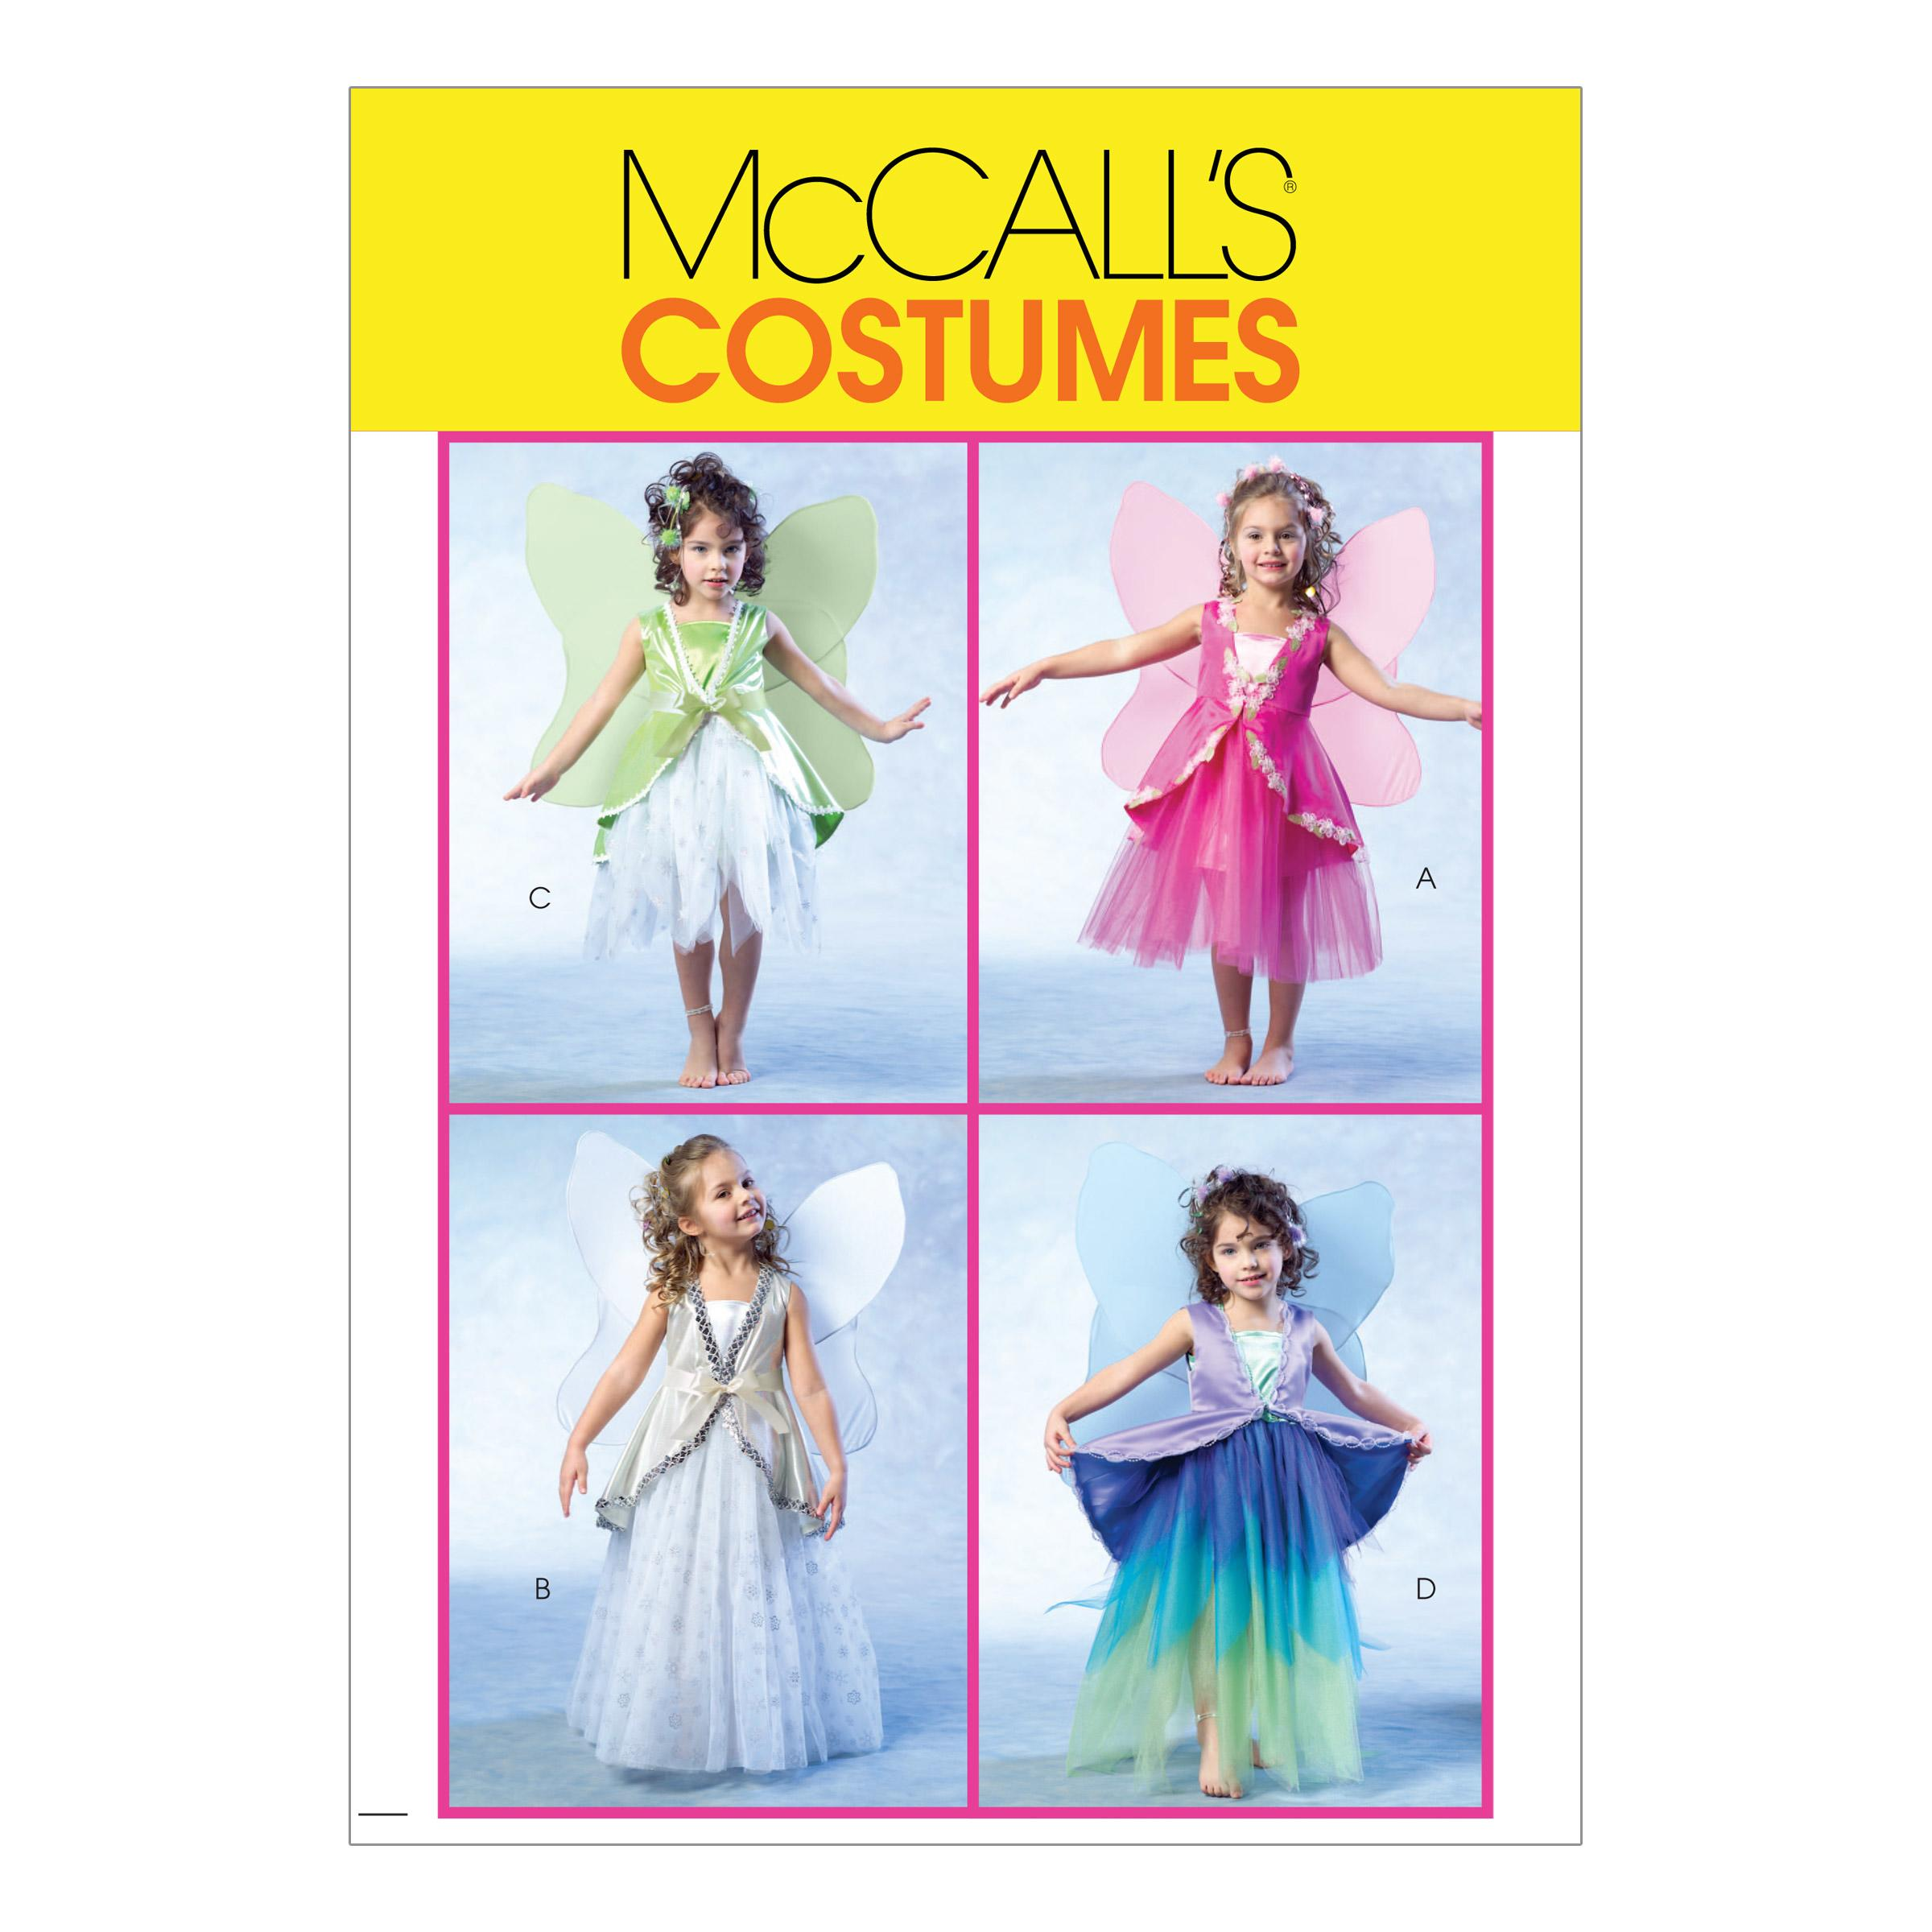 McCalls M4887 Costumes, Halloween